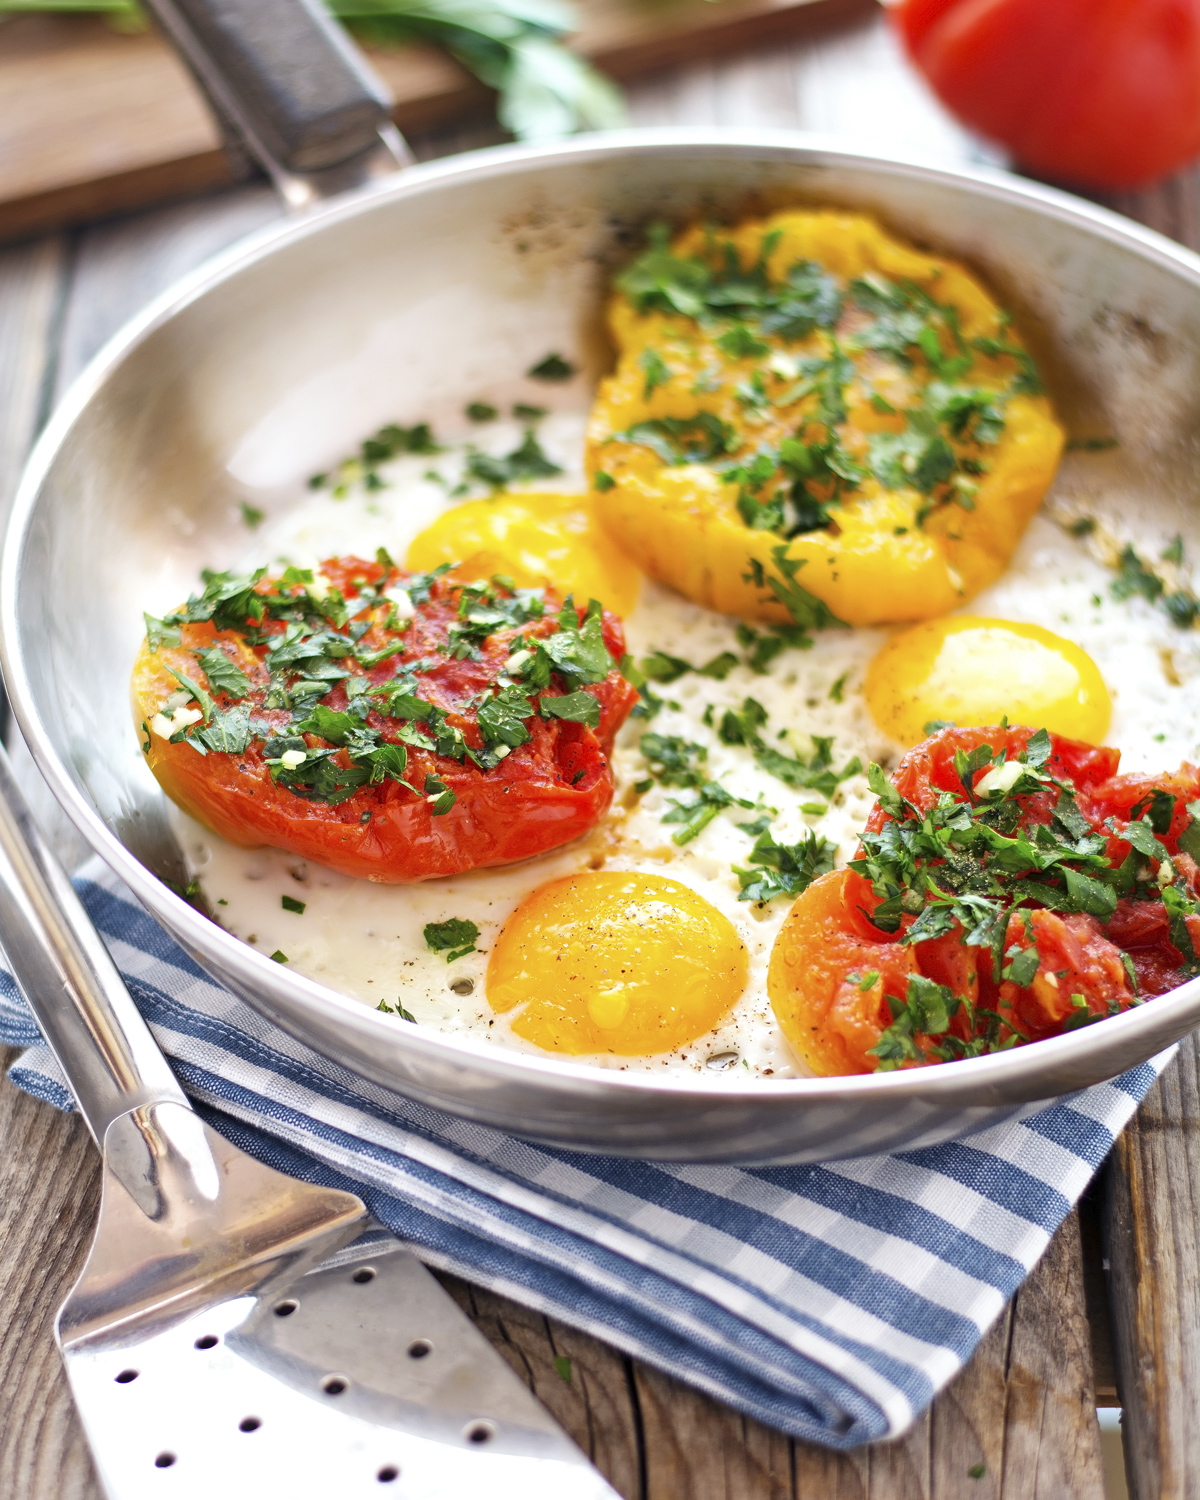 Sunny-Side Up Eggs with Provencal Tomatoes